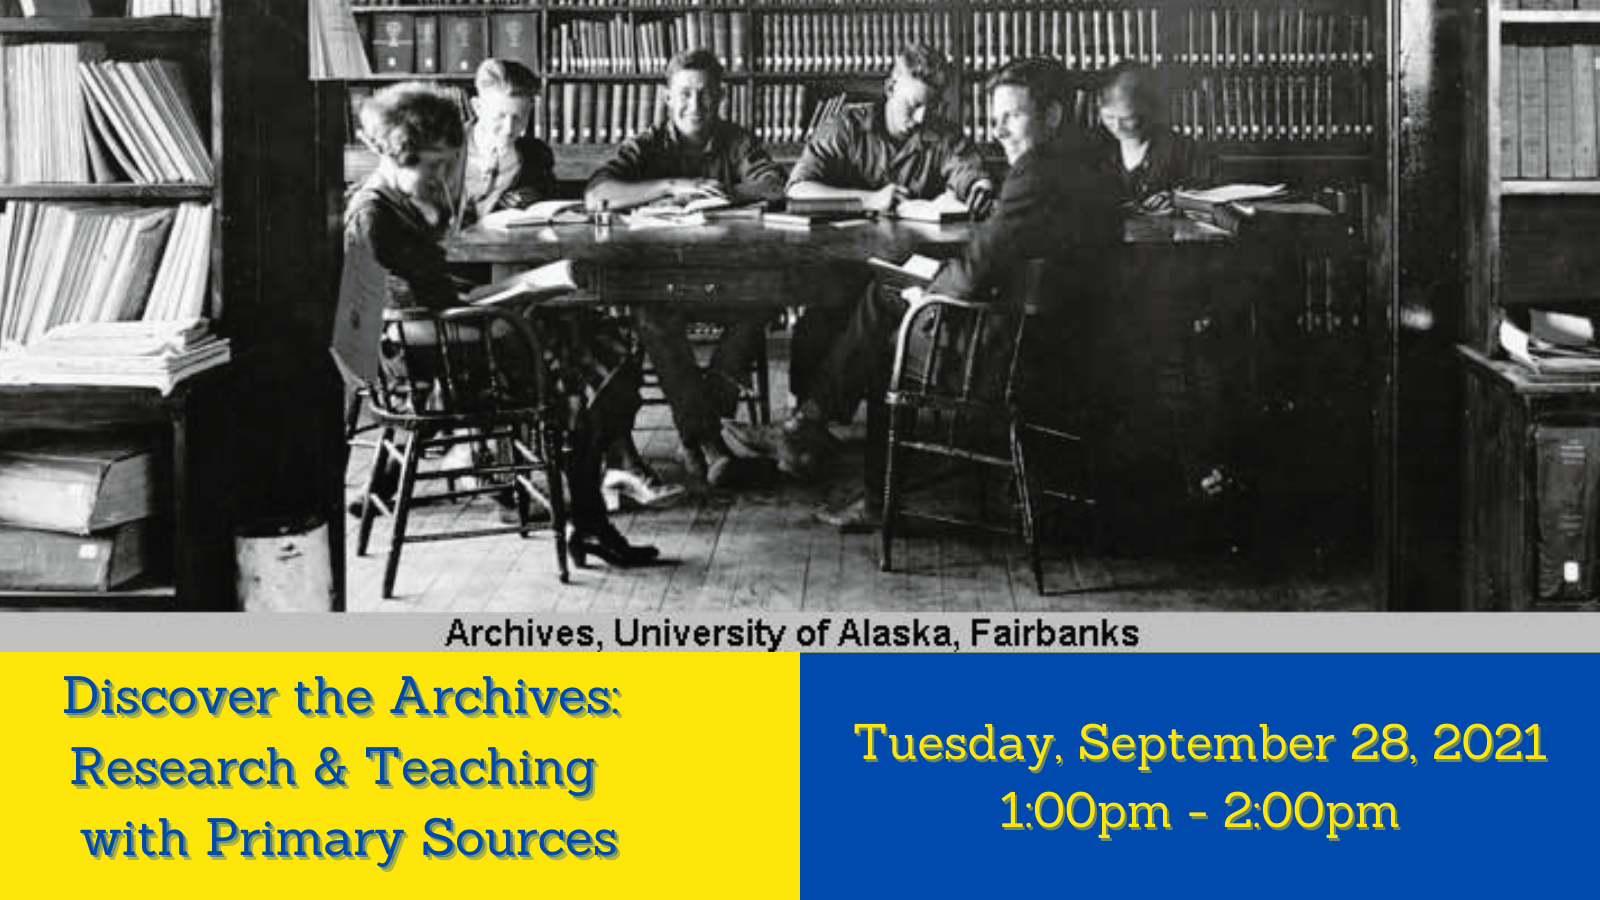 Discover the Archives Workshop on Sept. 28th at 1:00pm